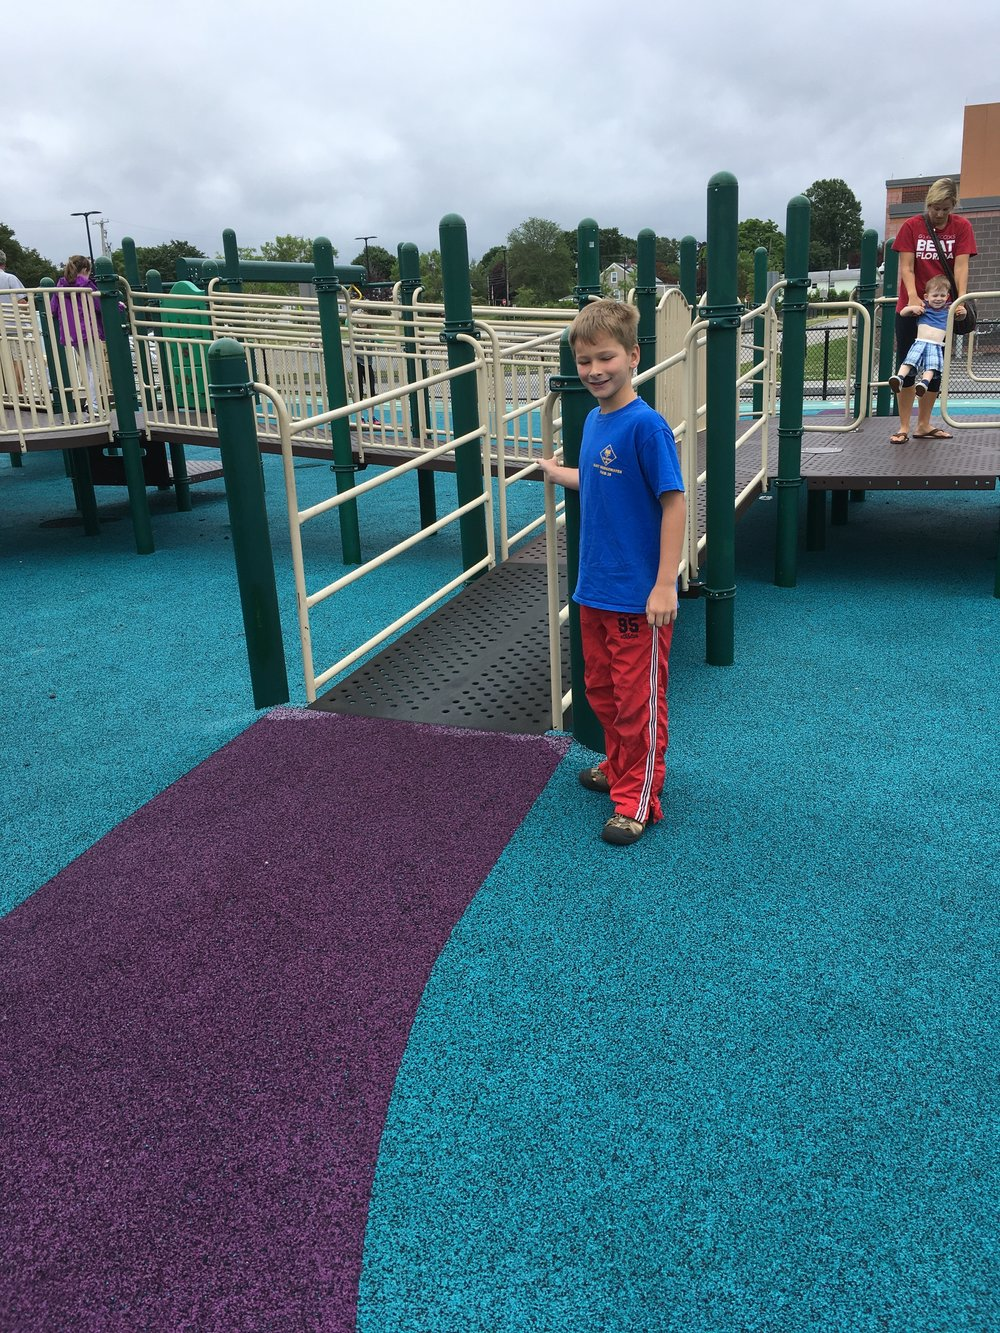 Tyler was impressed with the extensive ramp system.